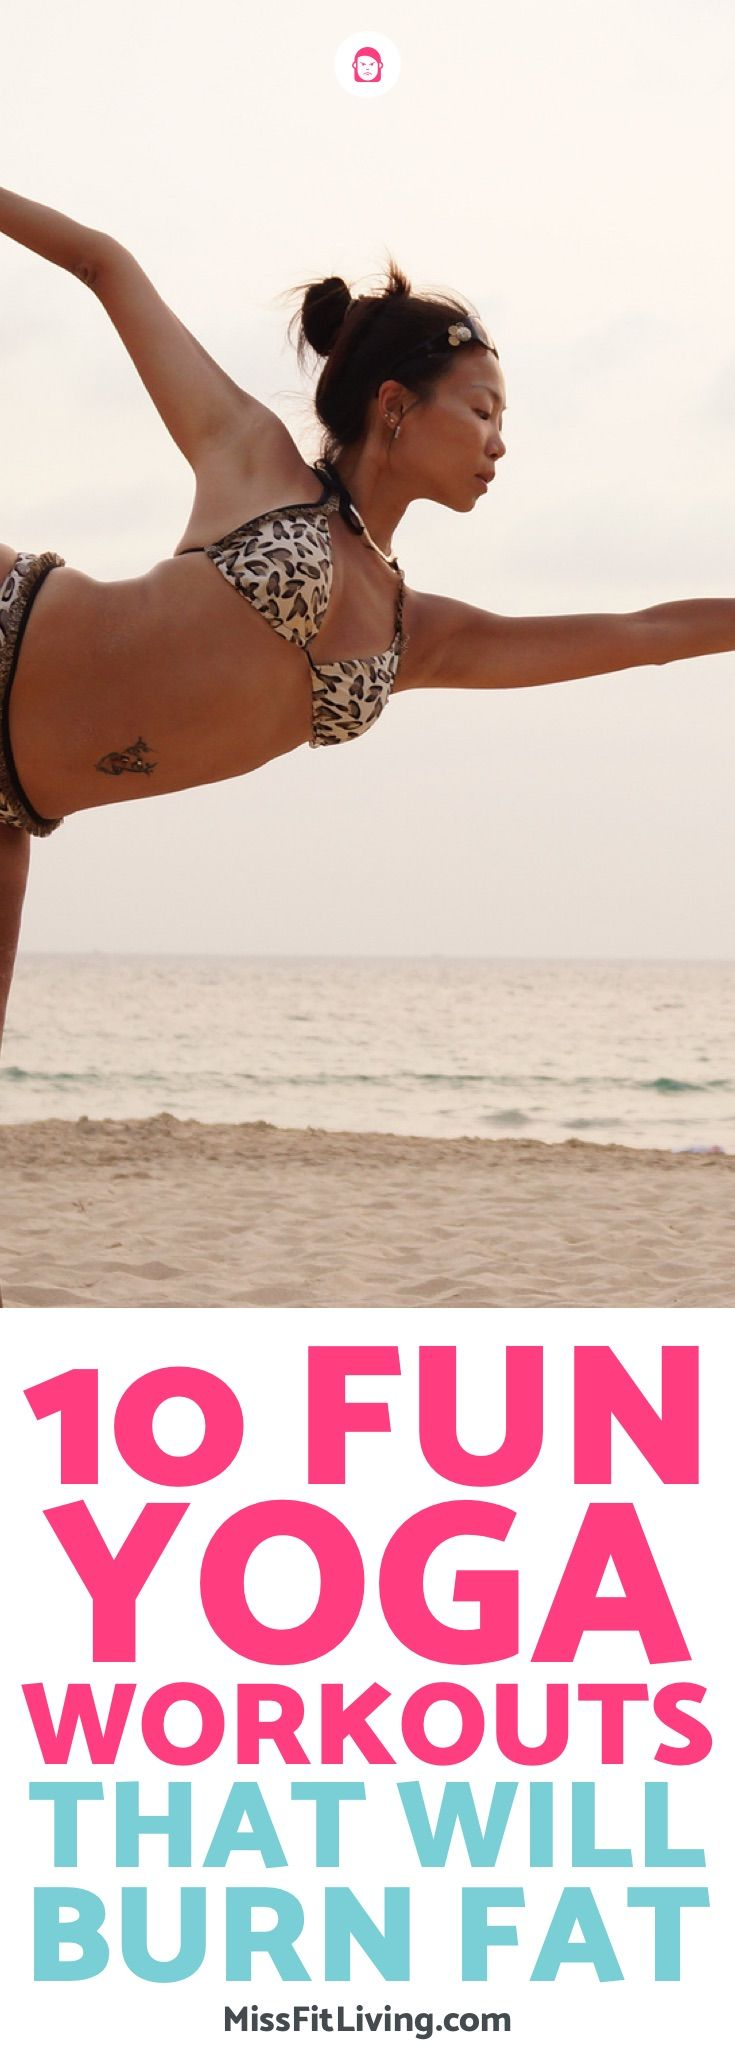 Losing weight with yoga can be fun. Here are 10 yoga workouts that will help you...